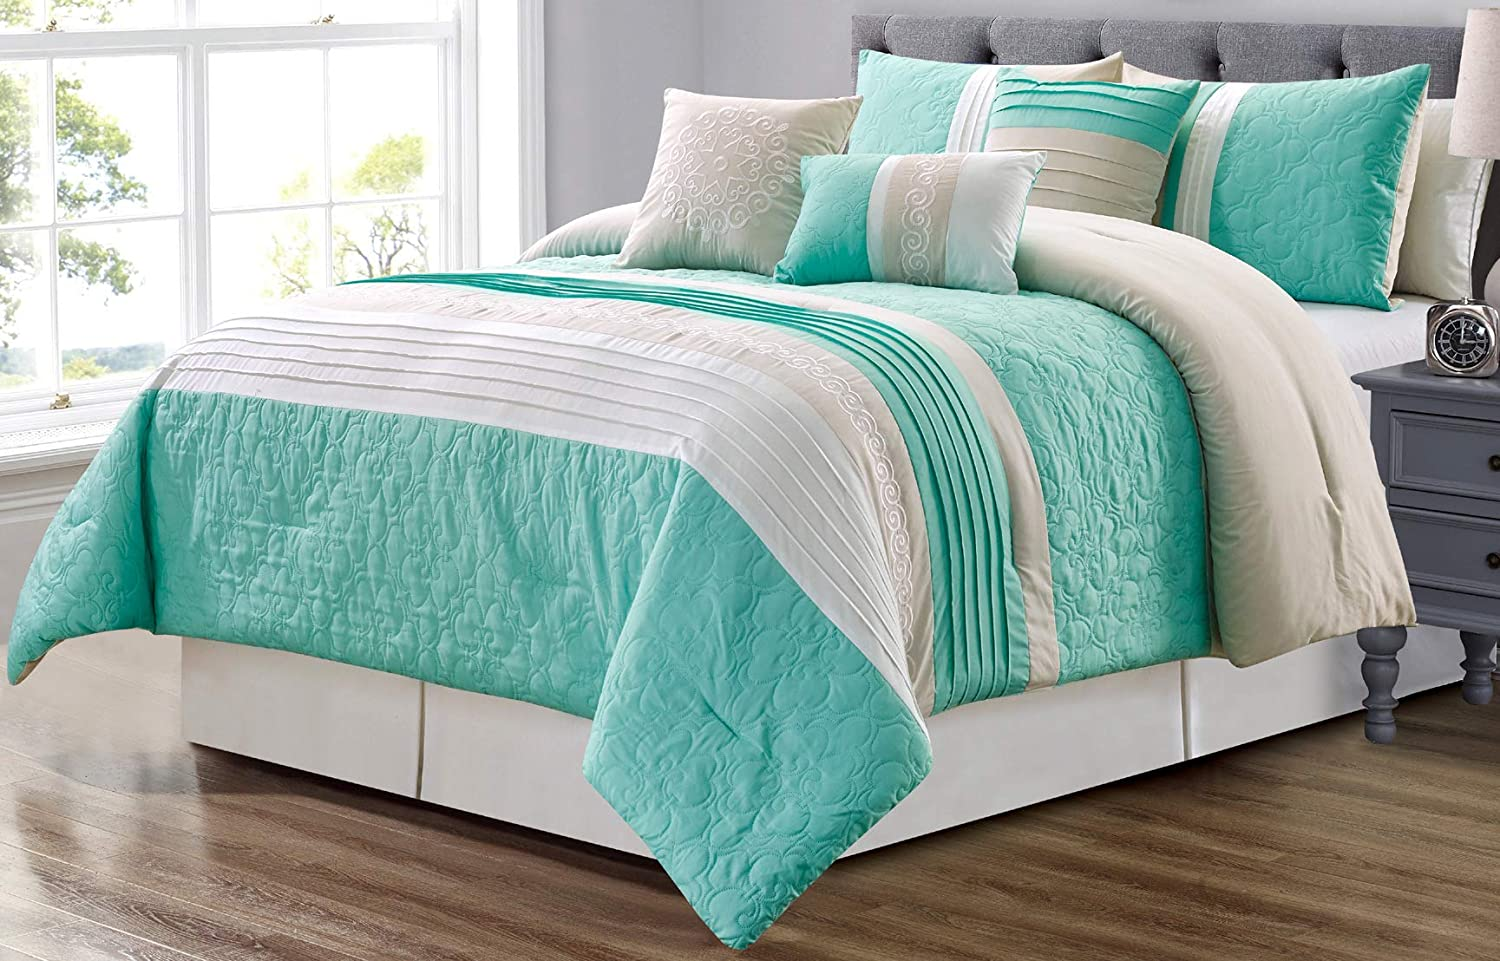 GrandLinen 7 Piece Turquoise Blue/Grey/White Scroll Embroidery Bed in A Bag Microfiber Comforter Set (Double) Full Size Bedding. Perfect for Any Bed Room or Guest Room